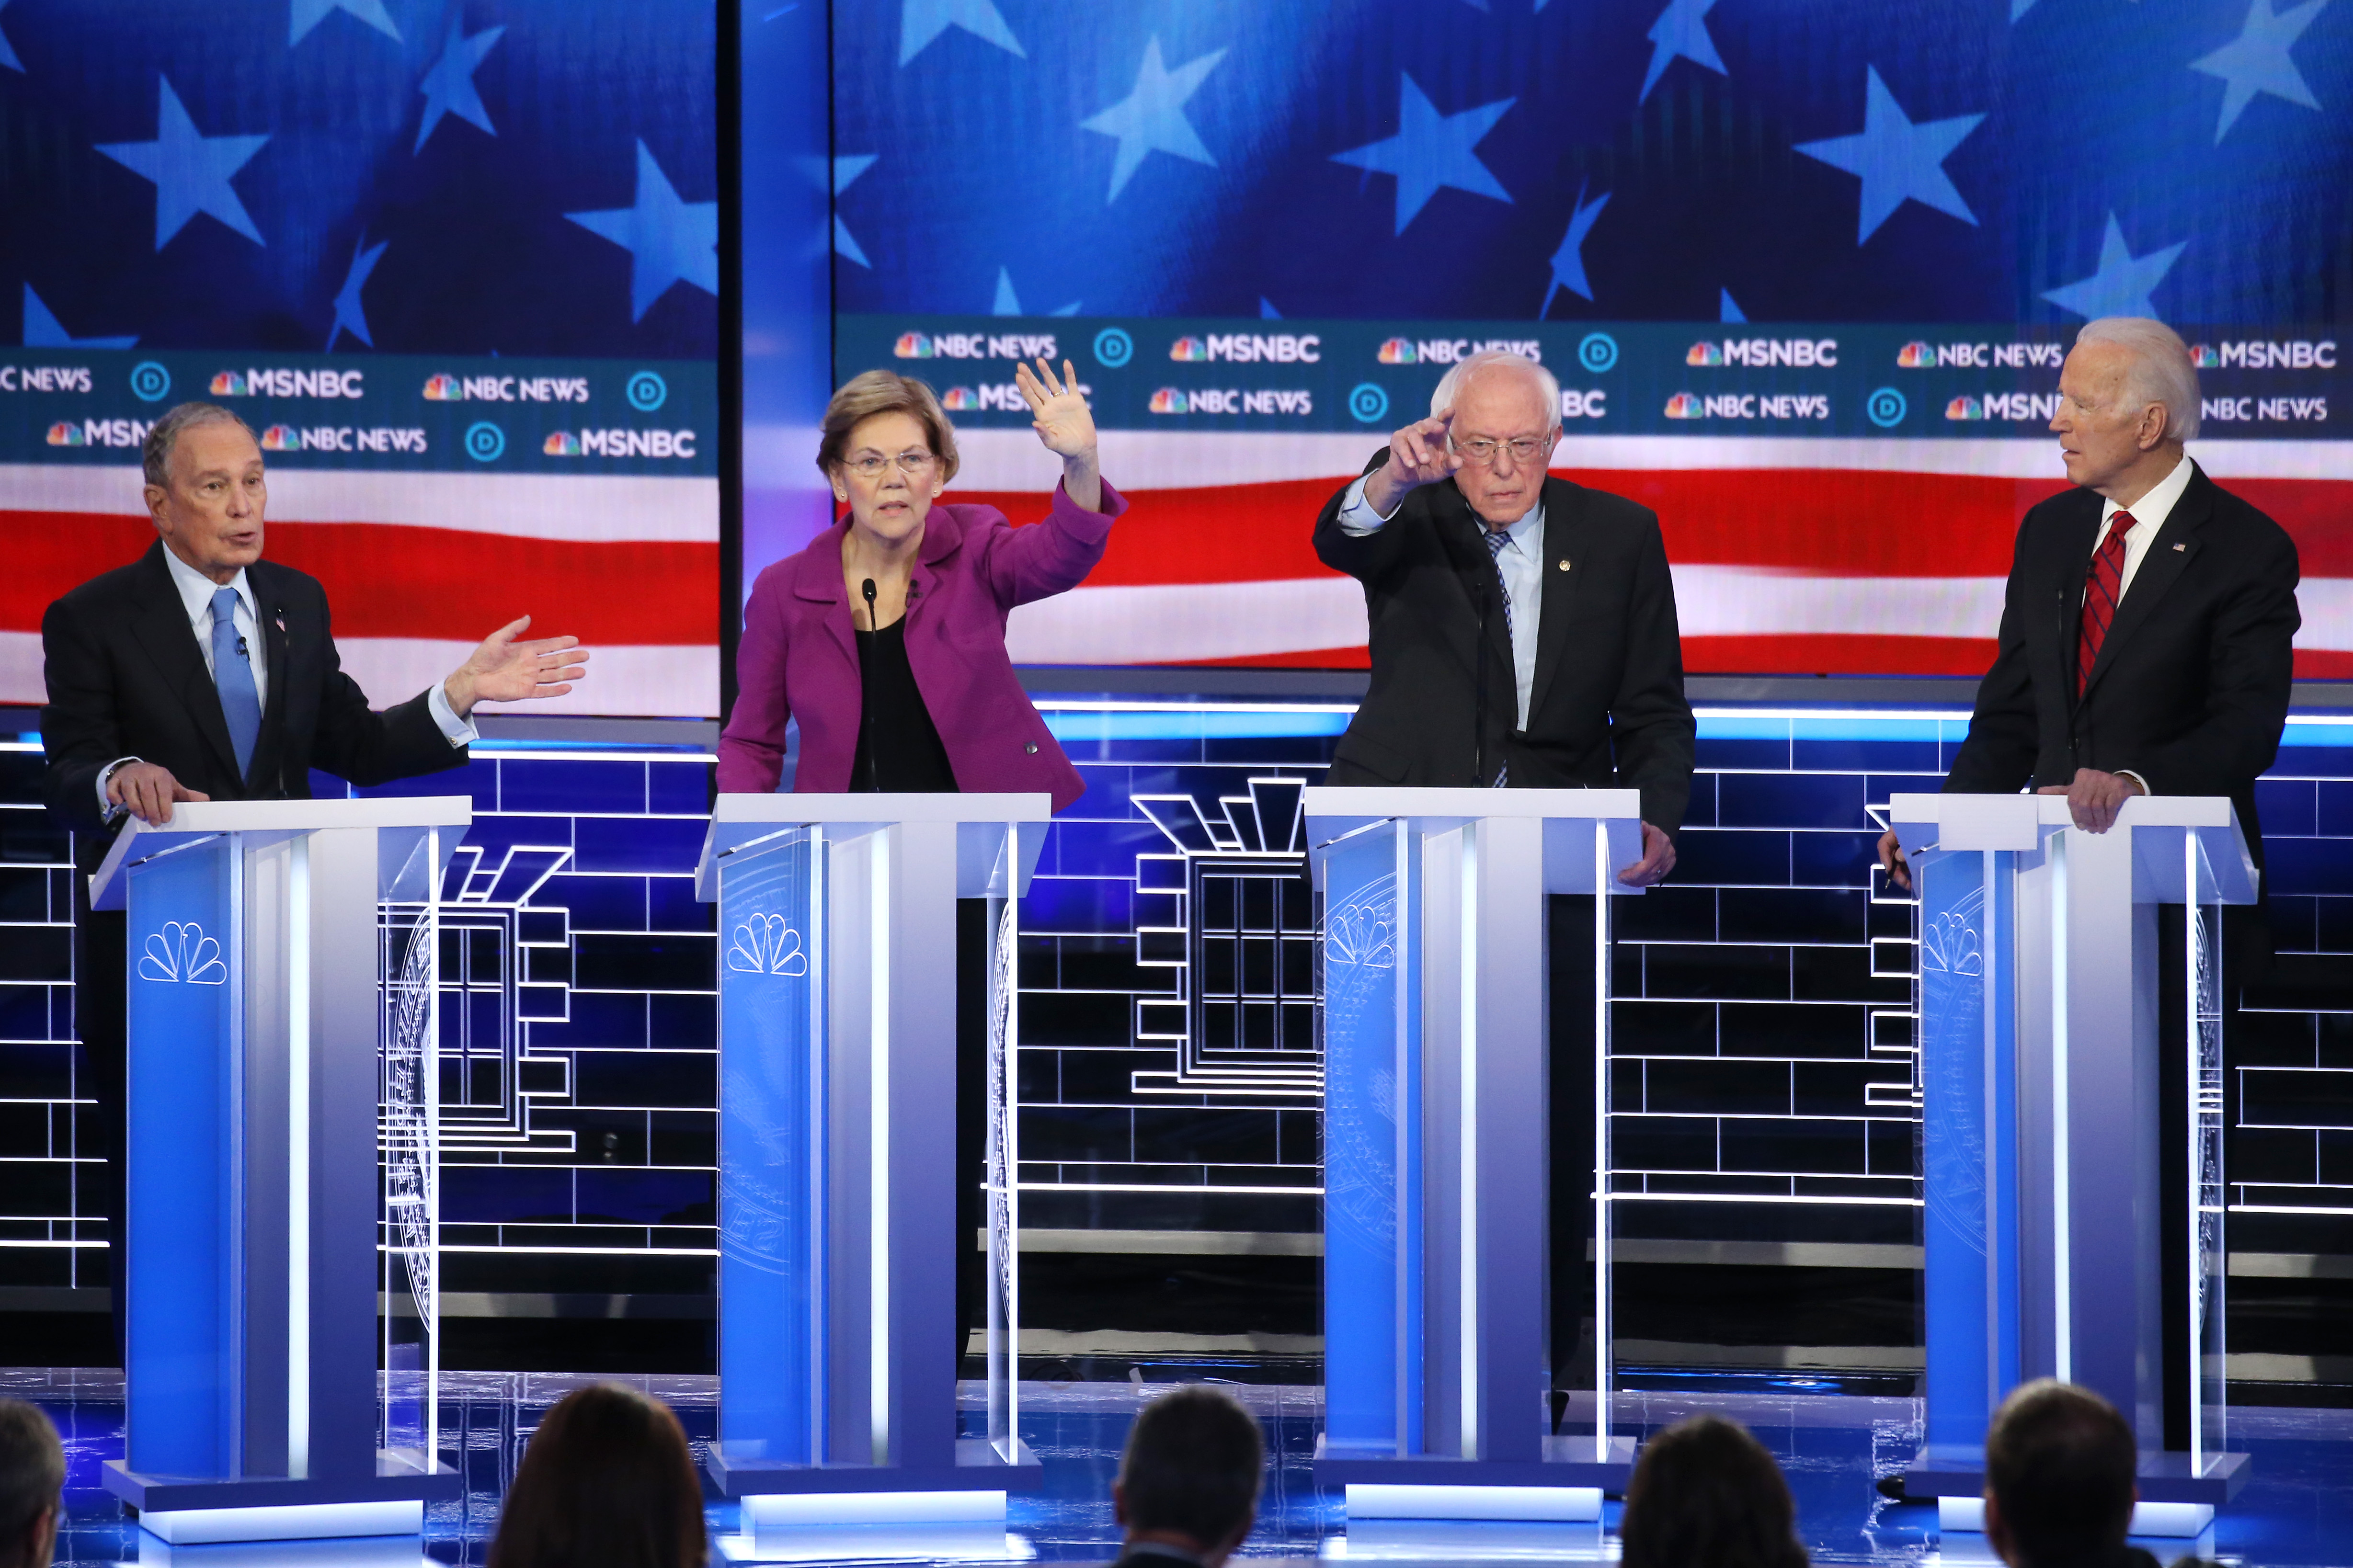 LAS VEGAS, NEVADA - FEBRUARY 19: Democratic presidential candidates (L-R) former New York City Mayor Mike Bloomberg, Sen. Elizabeth Warren (D-MA), Sen. Bernie Sanders (I-VT) and former Vice President Joe Biden participate in the Democratic presidential primary debate at Paris Las Vegas on February 19, 2020 in Las Vegas, Nevada. Six candidates qualified for the third Democratic presidential primary debate of 2020, which comes just days before the Nevada caucuses on February 22. (Photo by Mario Tama/Getty Images)